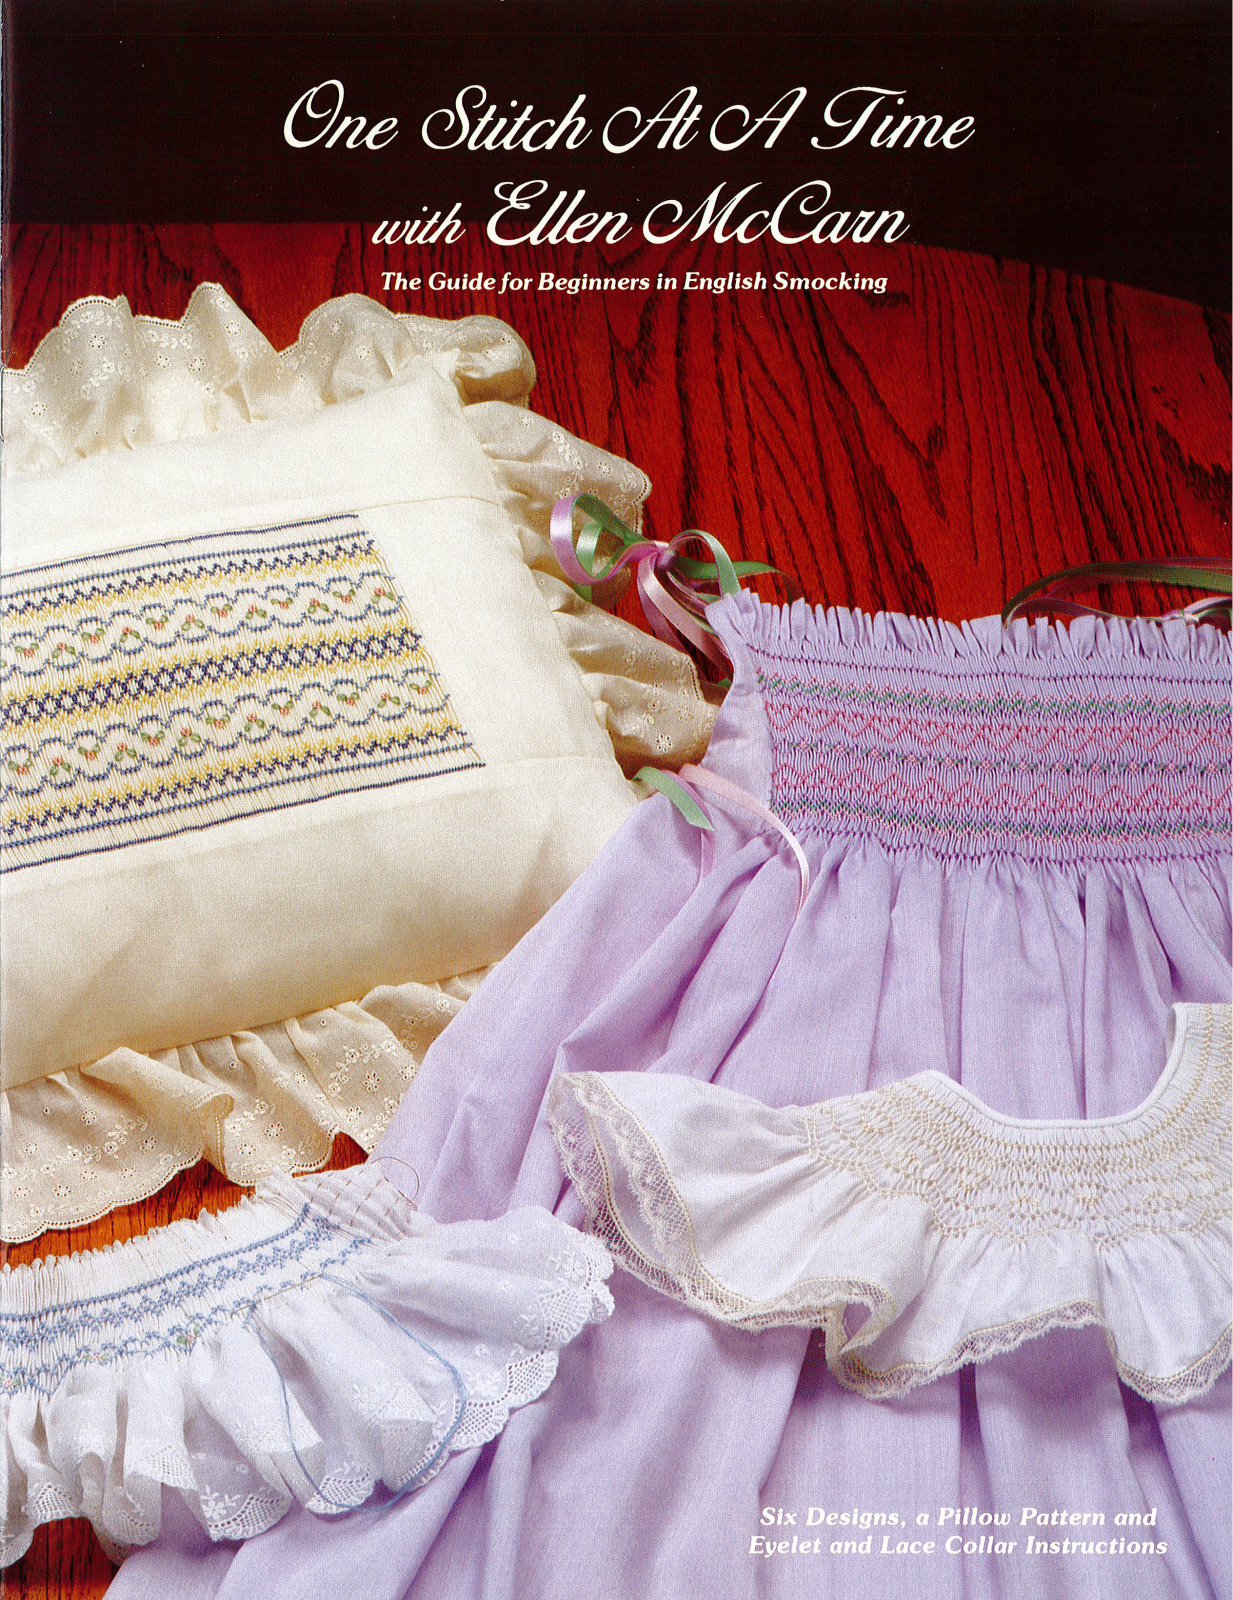 One Stitch At A Time with Ellen McCarn